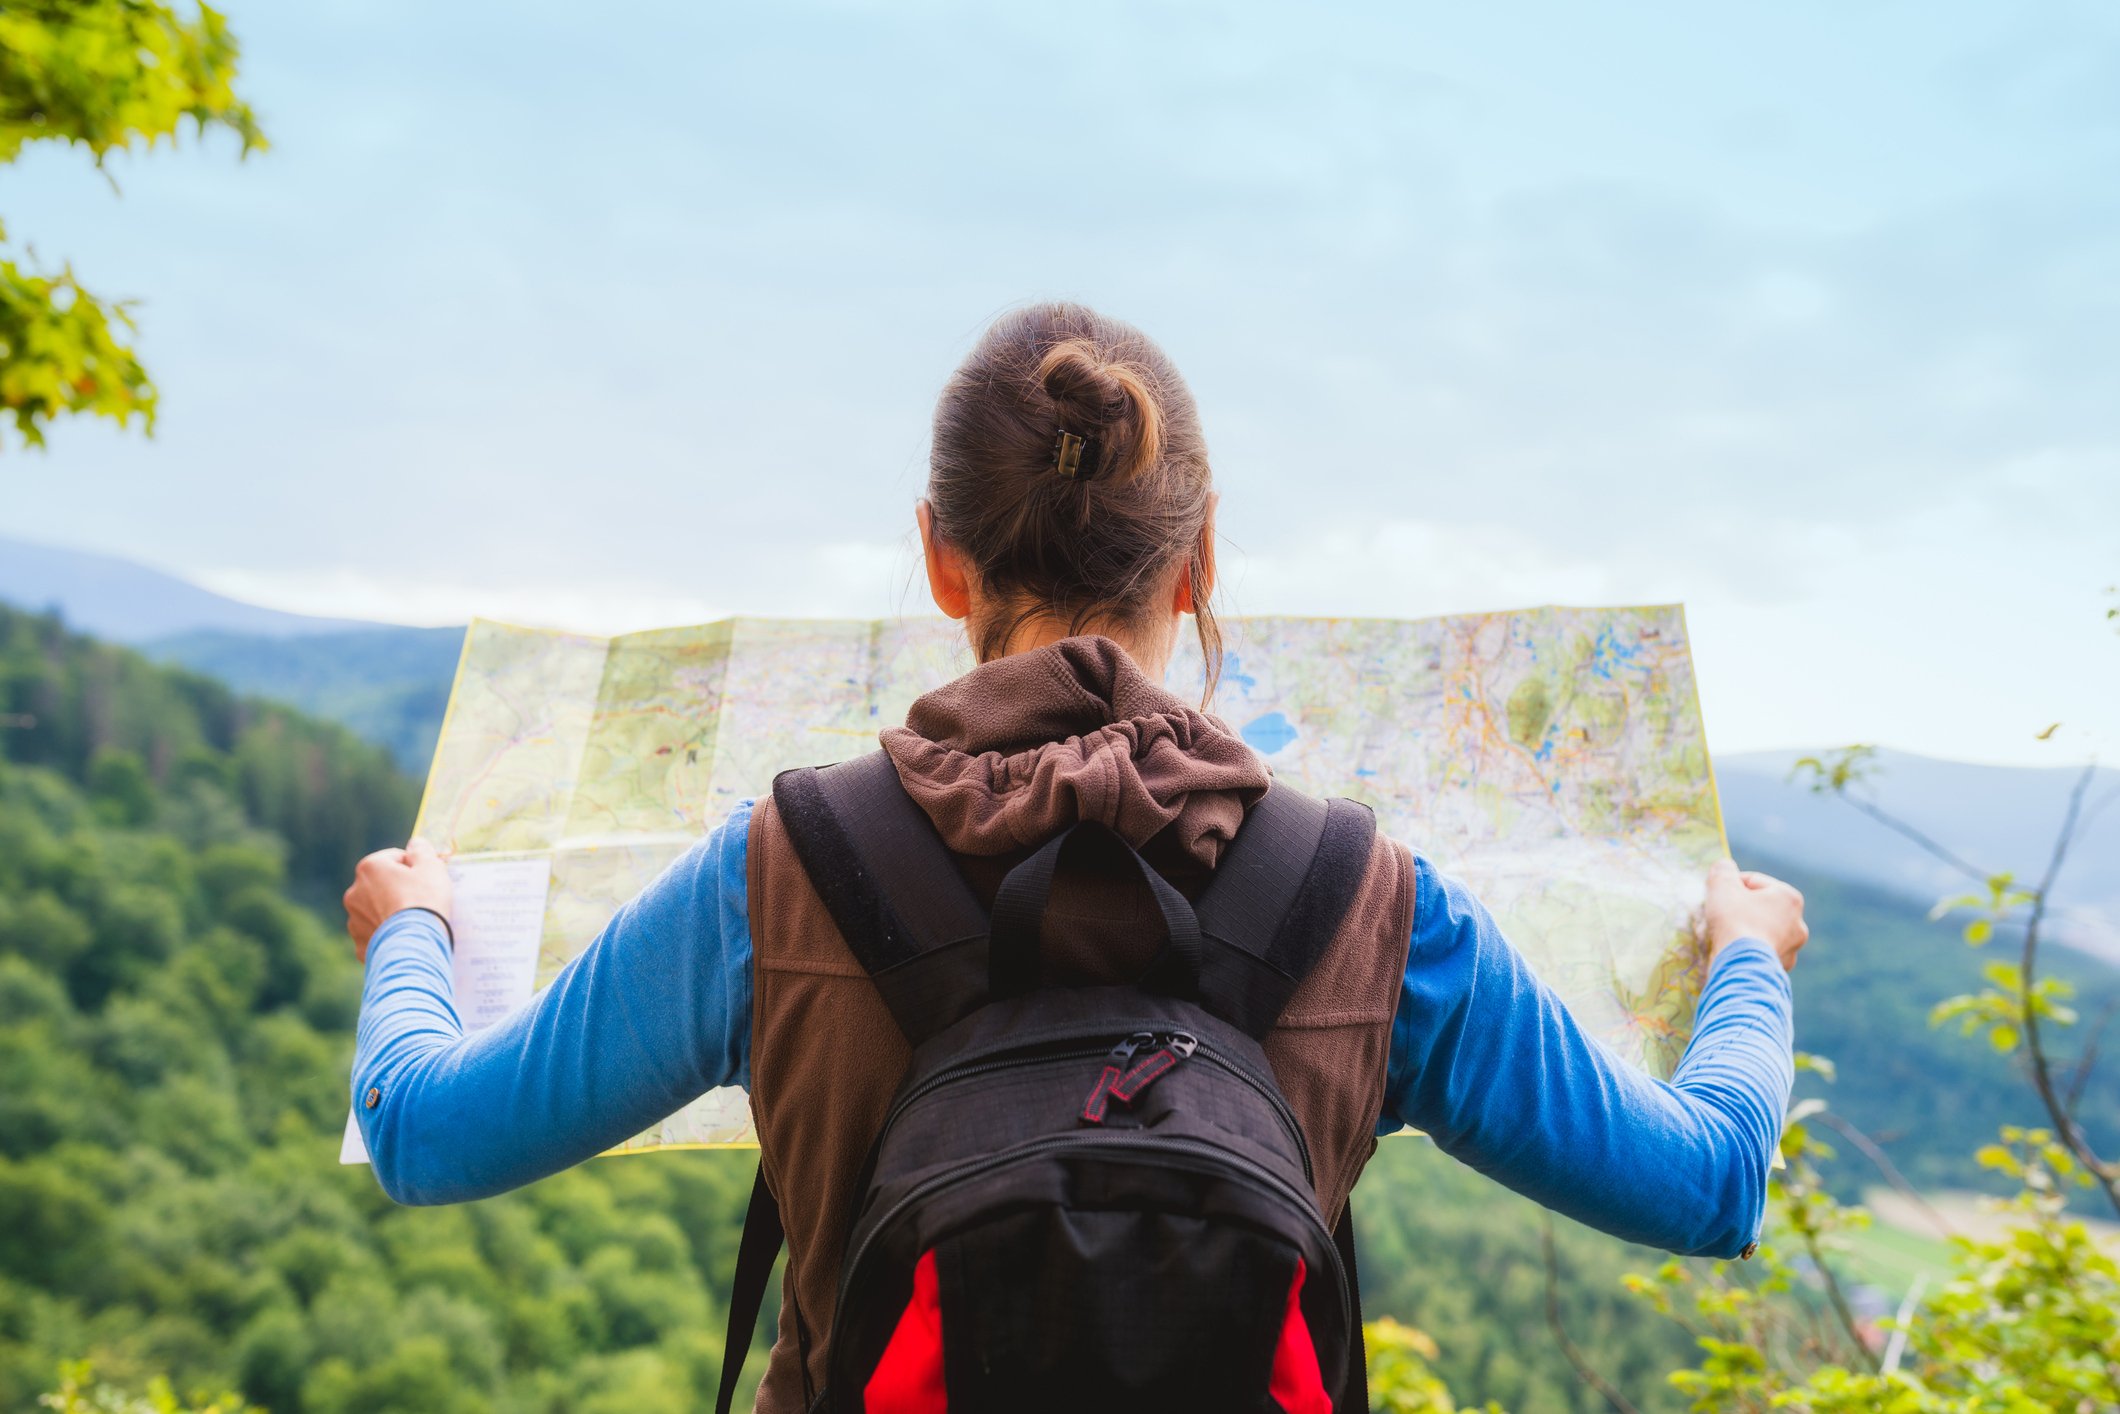 backpacker checks map to find directions